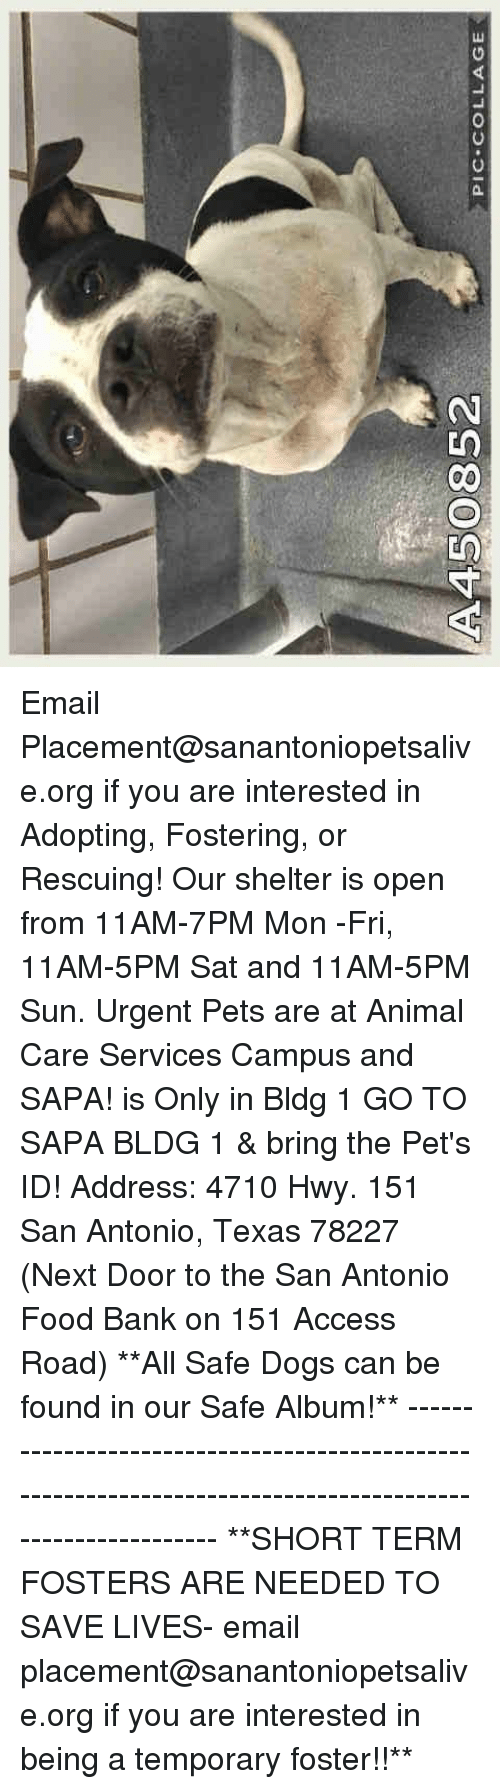 Dogs, Food, and Memes: 450852  PIC-COLLAGE Email Placement@sanantoniopetsalive.org if you are interested in Adopting, Fostering, or Rescuing!  Our shelter is open from 11AM-7PM Mon -Fri, 11AM-5PM Sat and 11AM-5PM Sun.  Urgent Pets are at Animal Care Services Campus and SAPA! is Only in Bldg 1 GO TO SAPA BLDG 1 & bring the Pet's ID! Address: 4710 Hwy. 151 San Antonio, Texas 78227 (Next Door to the San Antonio Food Bank on 151 Access Road)  **All Safe Dogs can be found in our Safe Album!** ---------------------------------------------------------------------------------------------------------- **SHORT TERM FOSTERS ARE NEEDED TO SAVE LIVES- email placement@sanantoniopetsalive.org if you are interested in being a temporary foster!!**